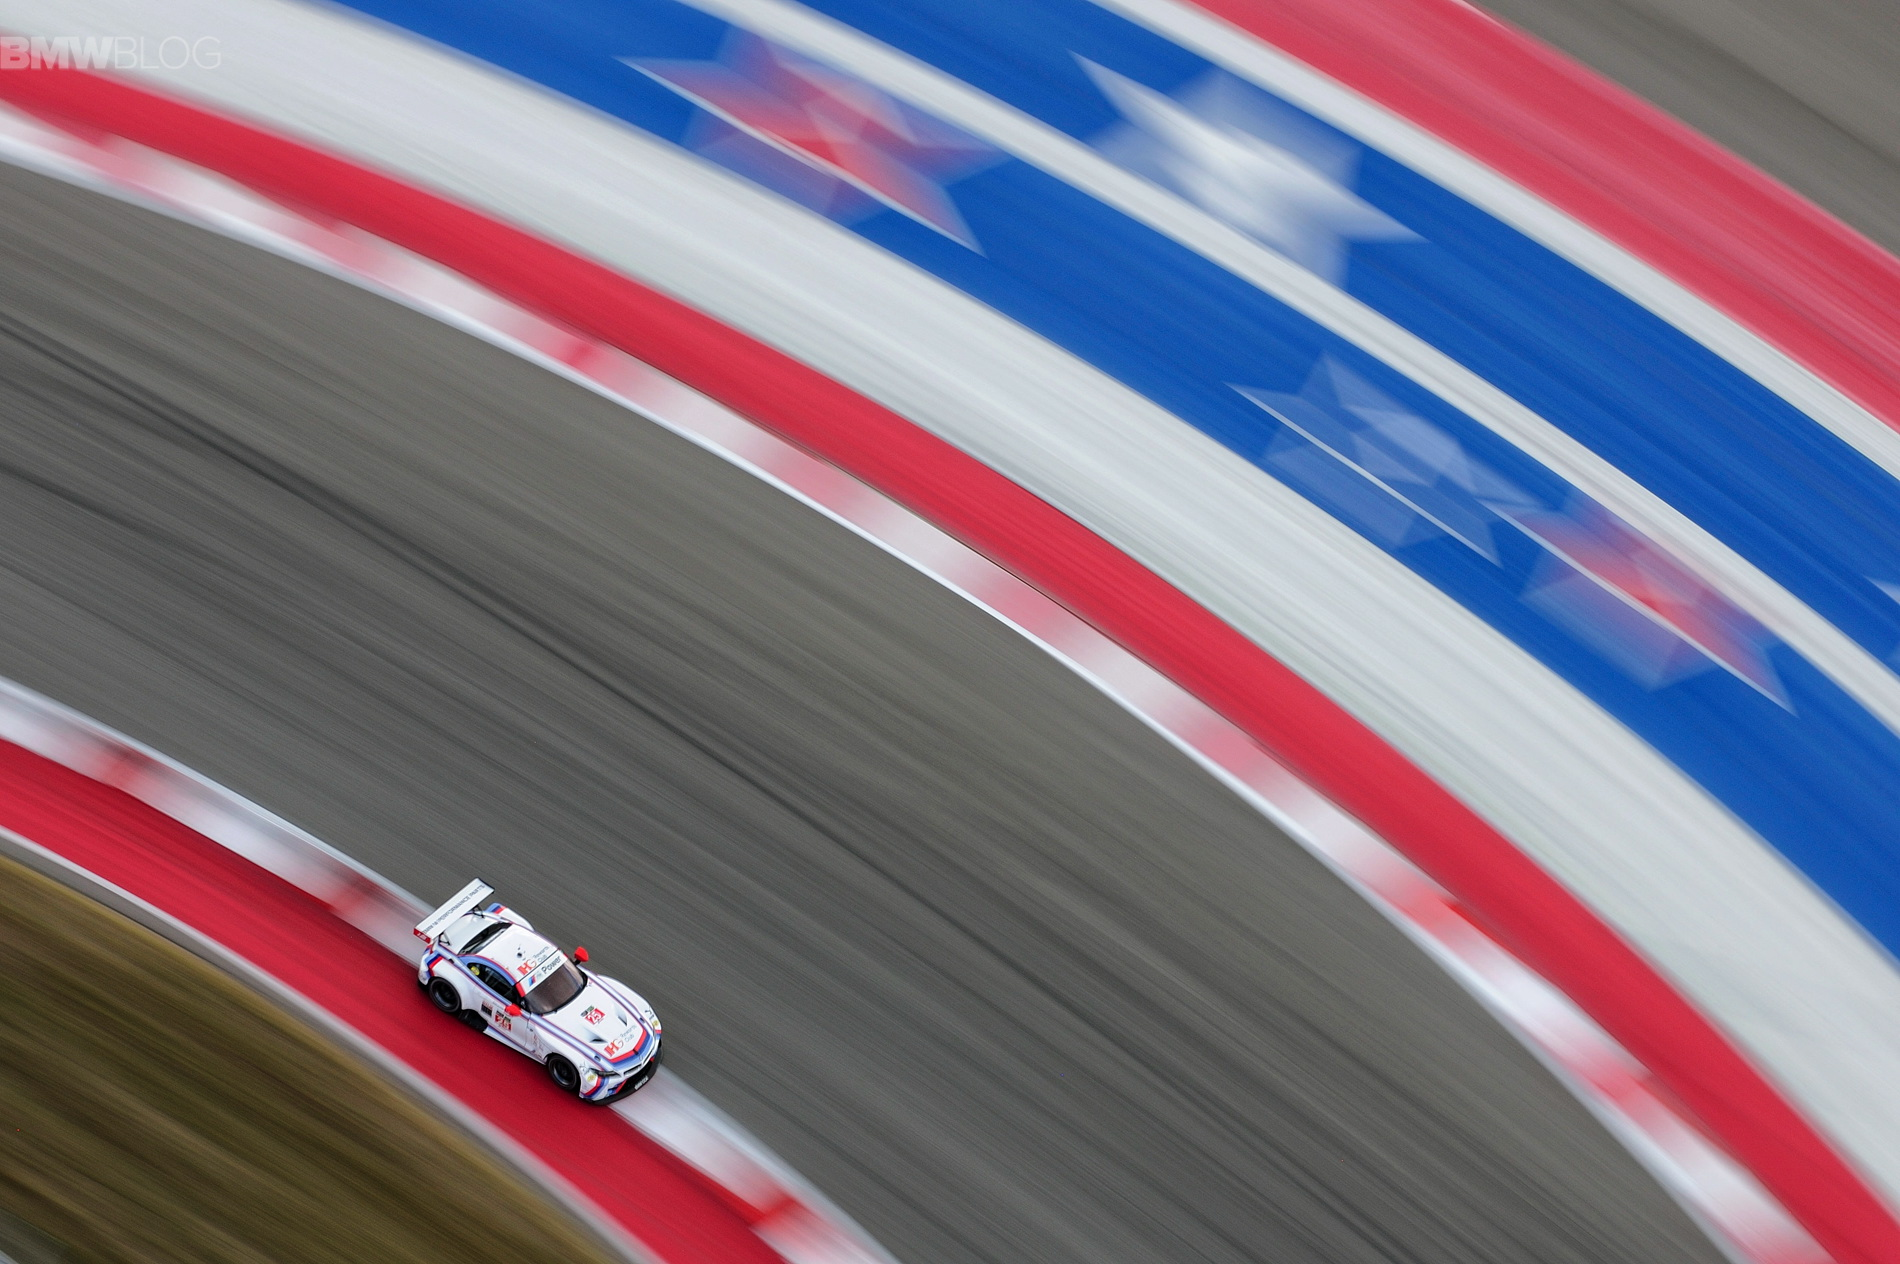 Bmw Rll Results At Circuit Of The Americas